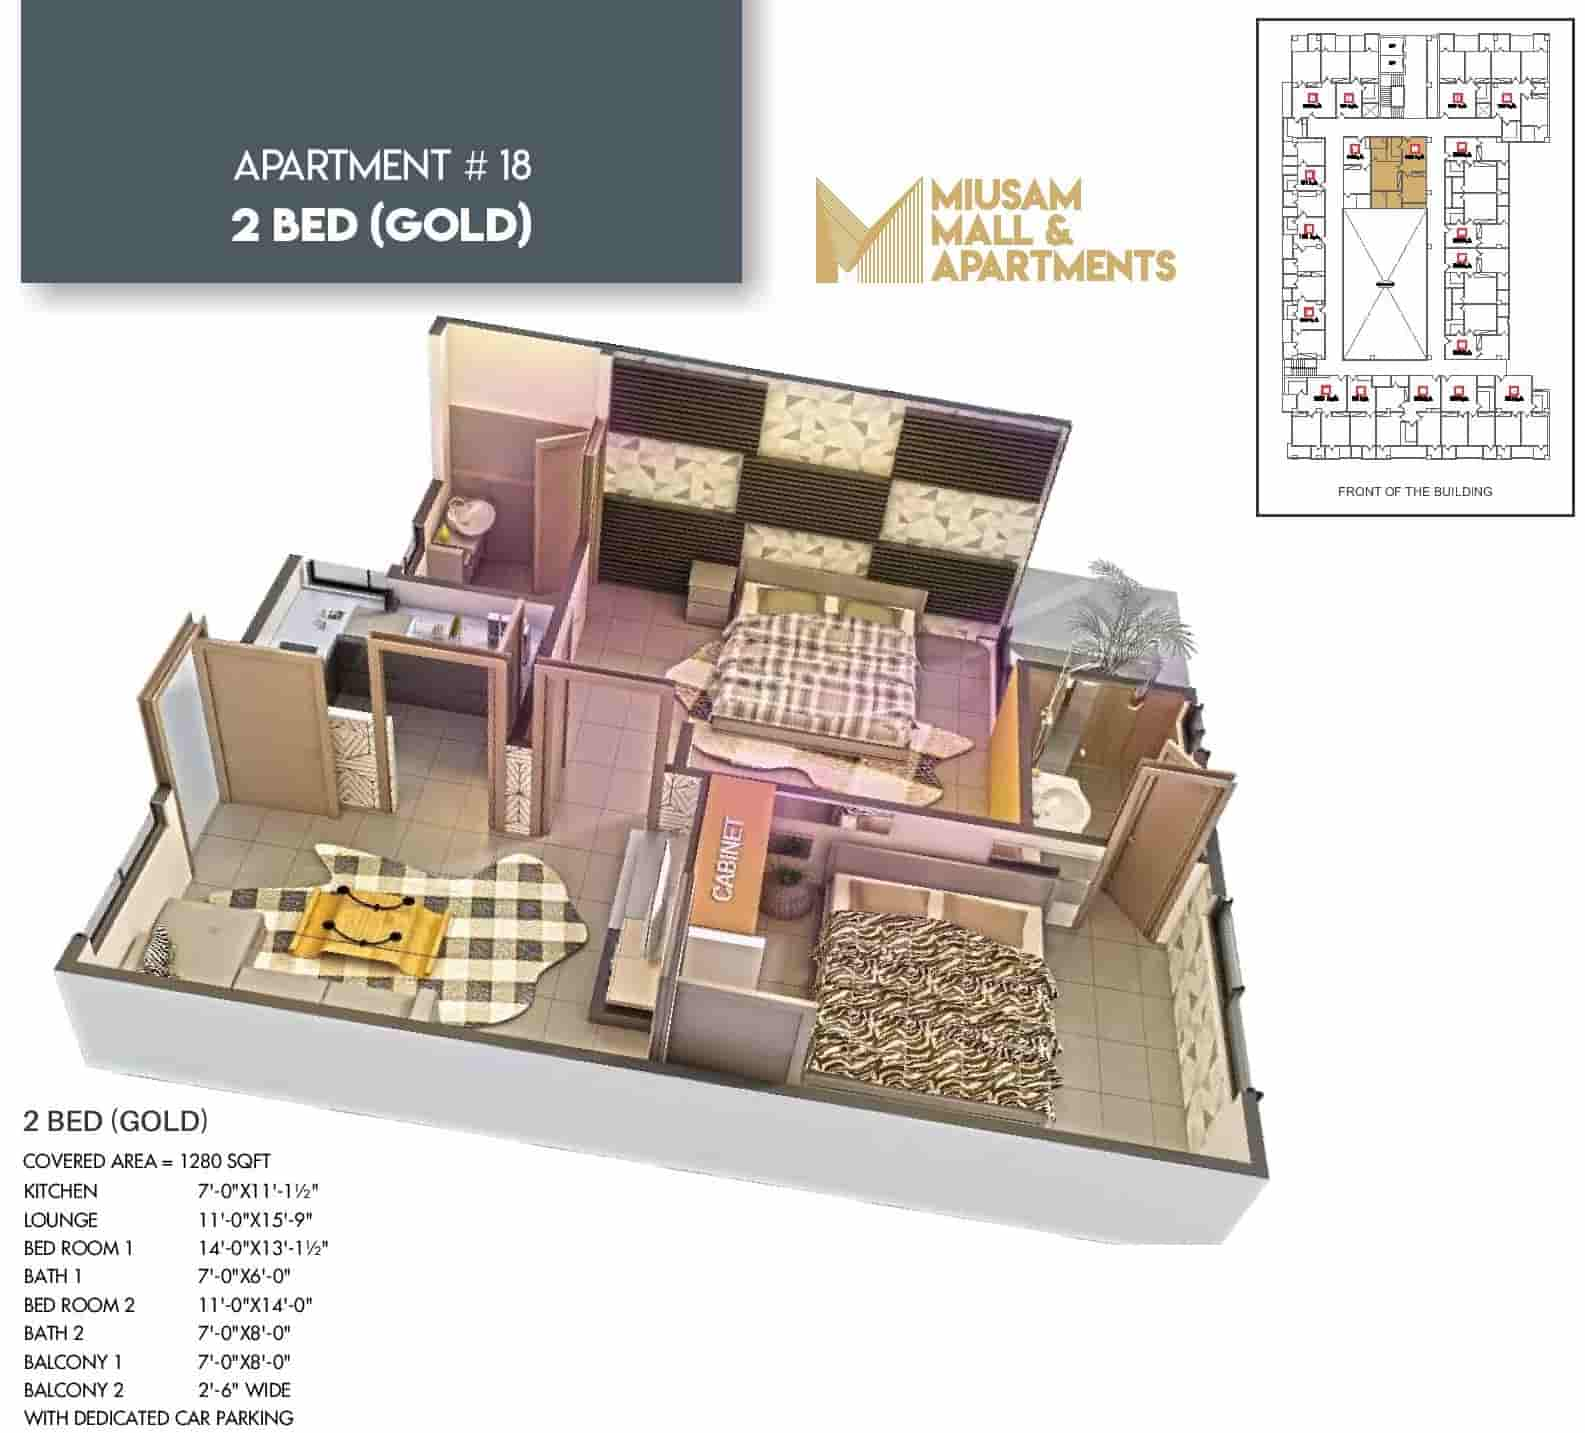 Miusam Mall 2 Bed Gold Apartment 3 Layout